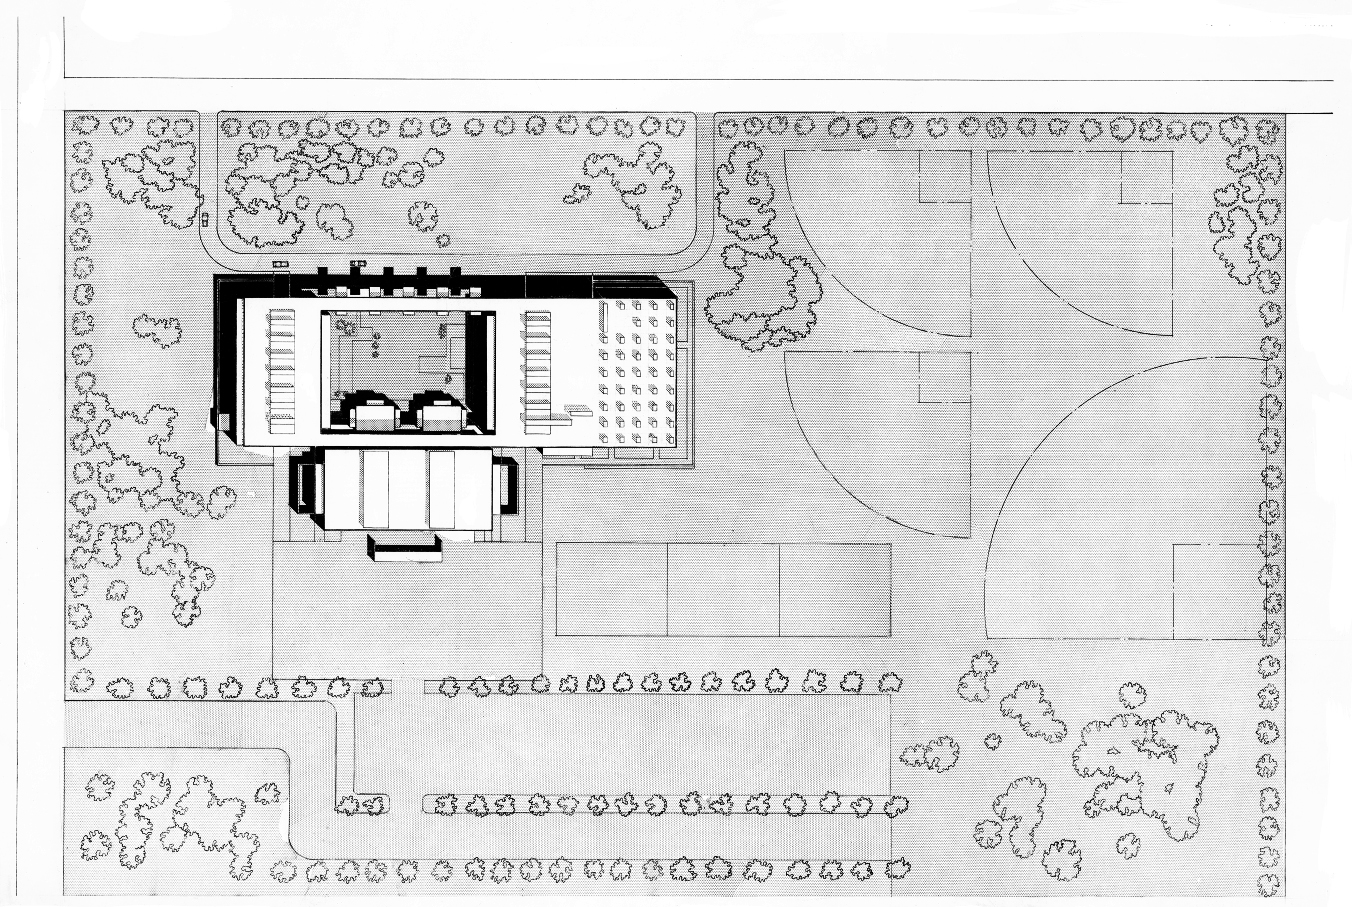 Riverview High School, Sarasota, Florida. Site Plan Rendering.